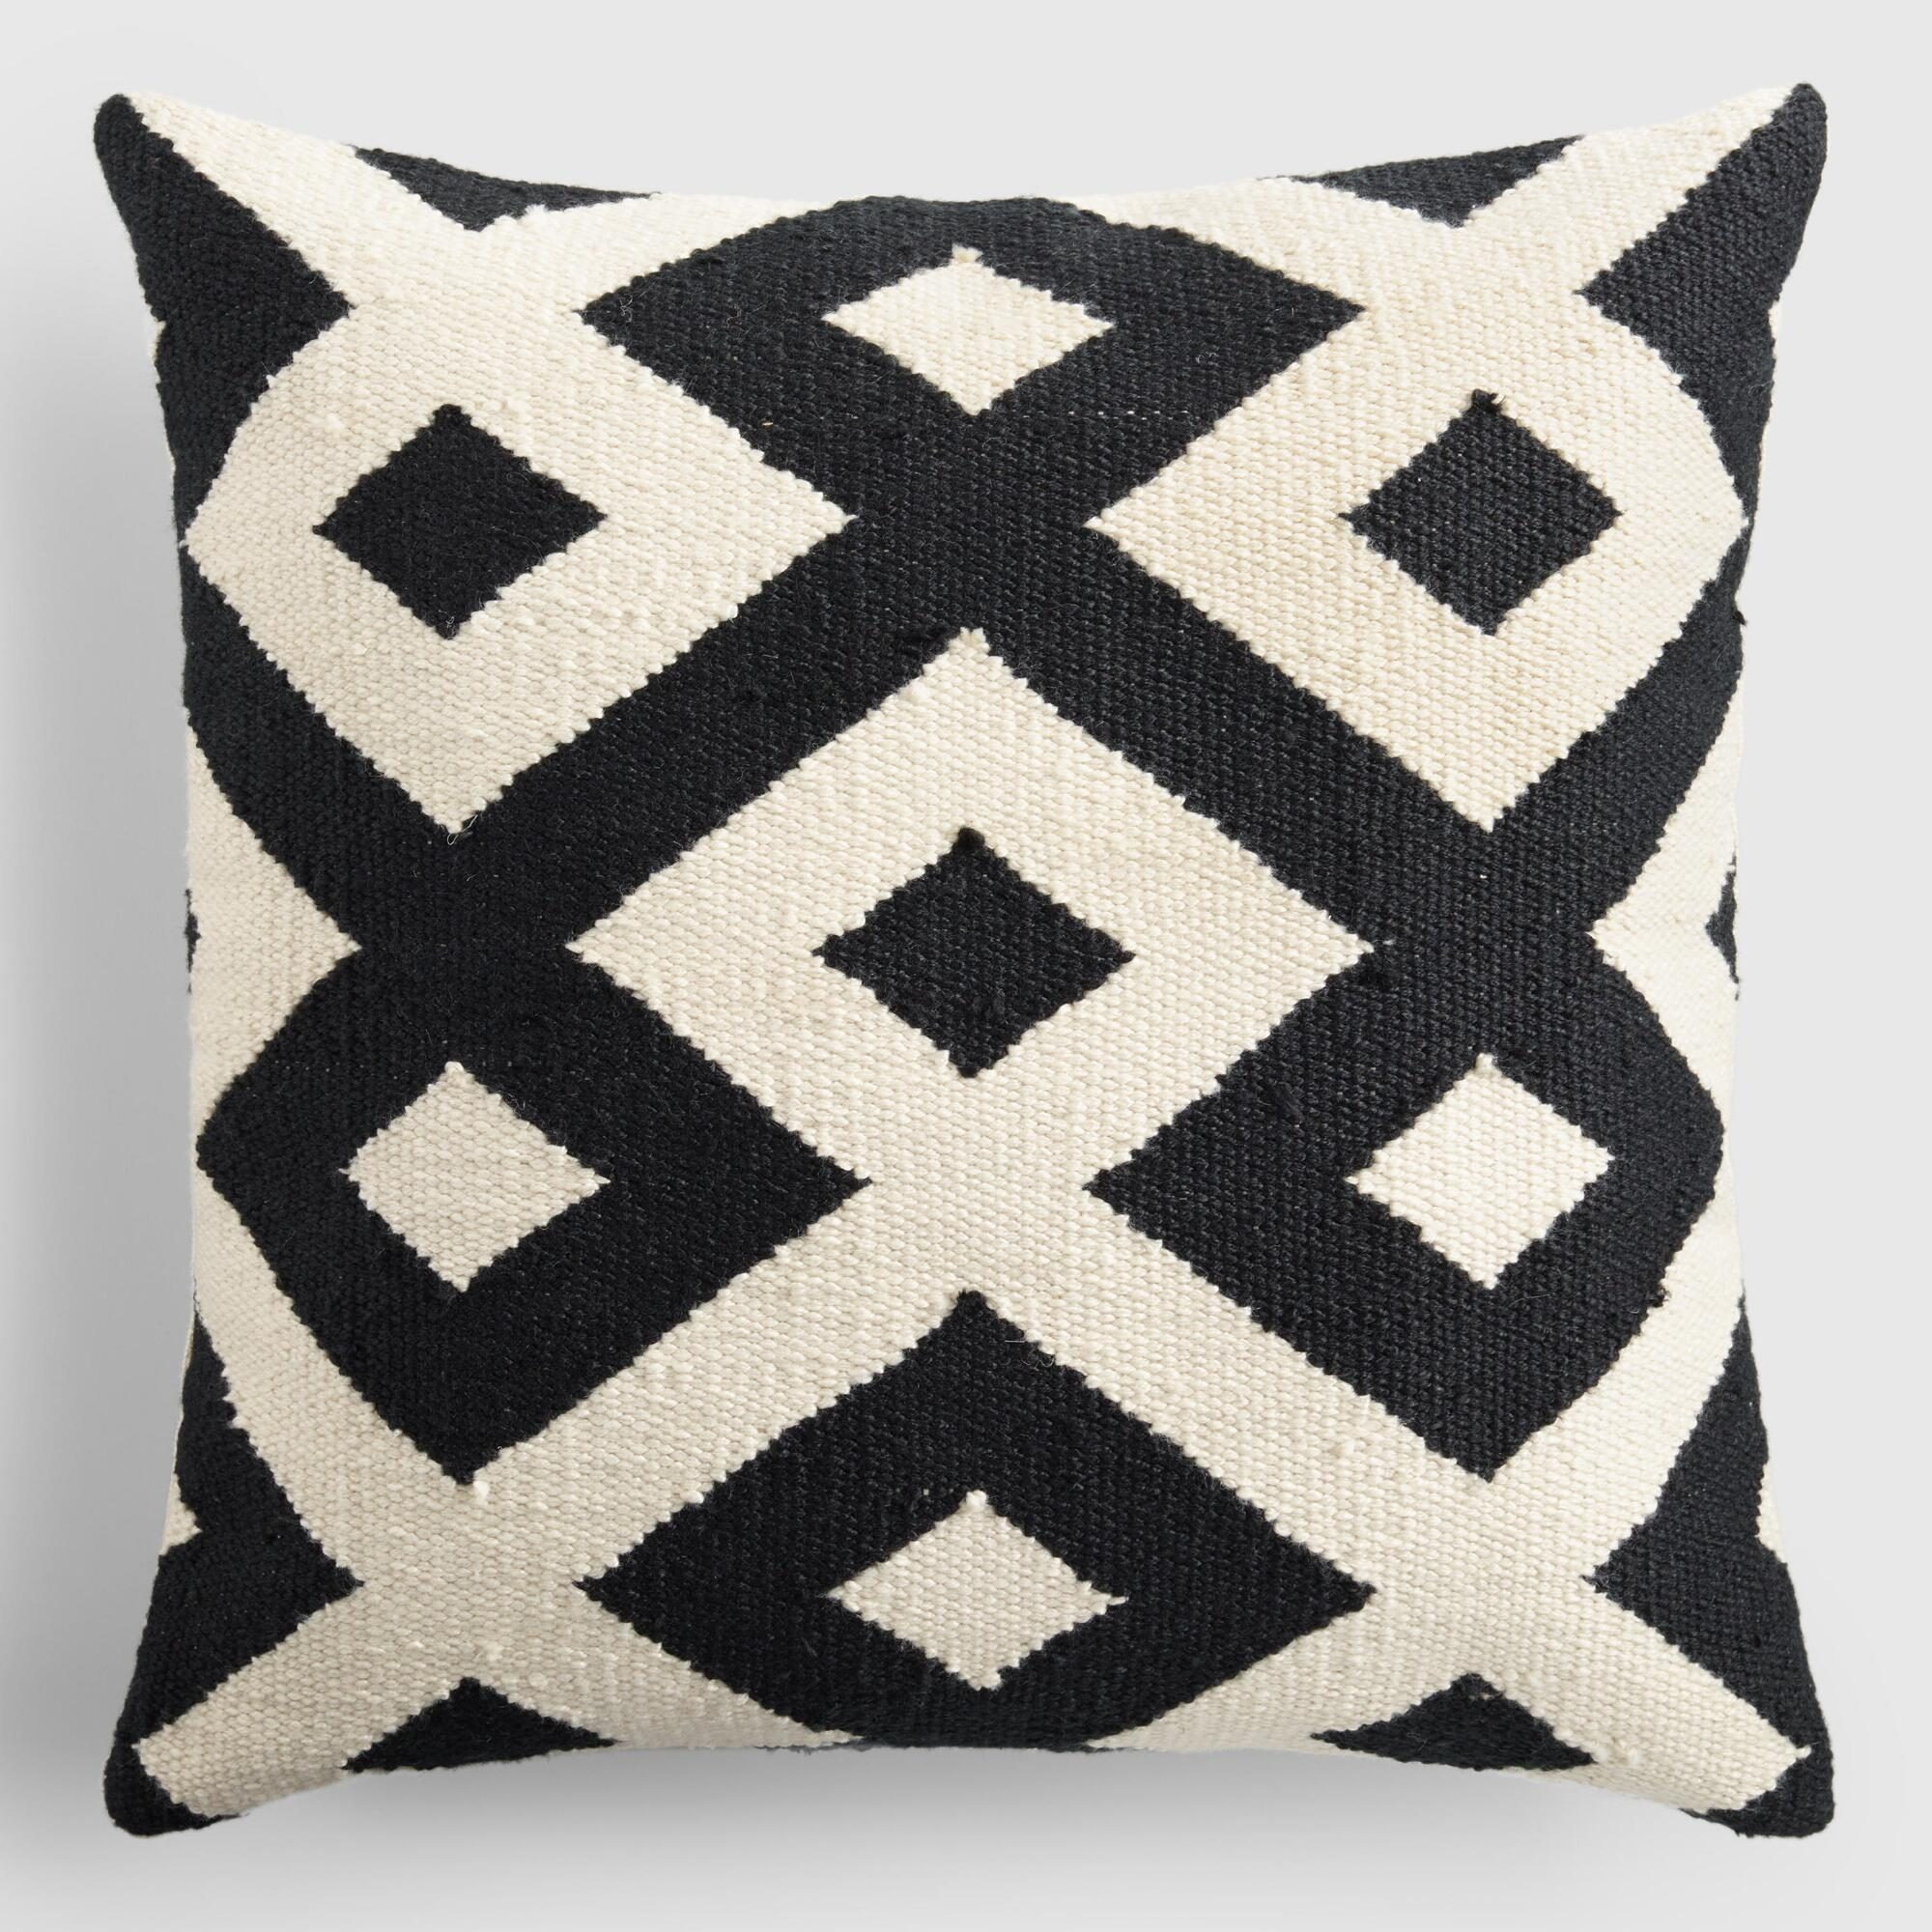 """Black and Ivory Geometric Indoor Outdoor Patio Throw Pillow - Polyester - 18"""" Square by World Market"""